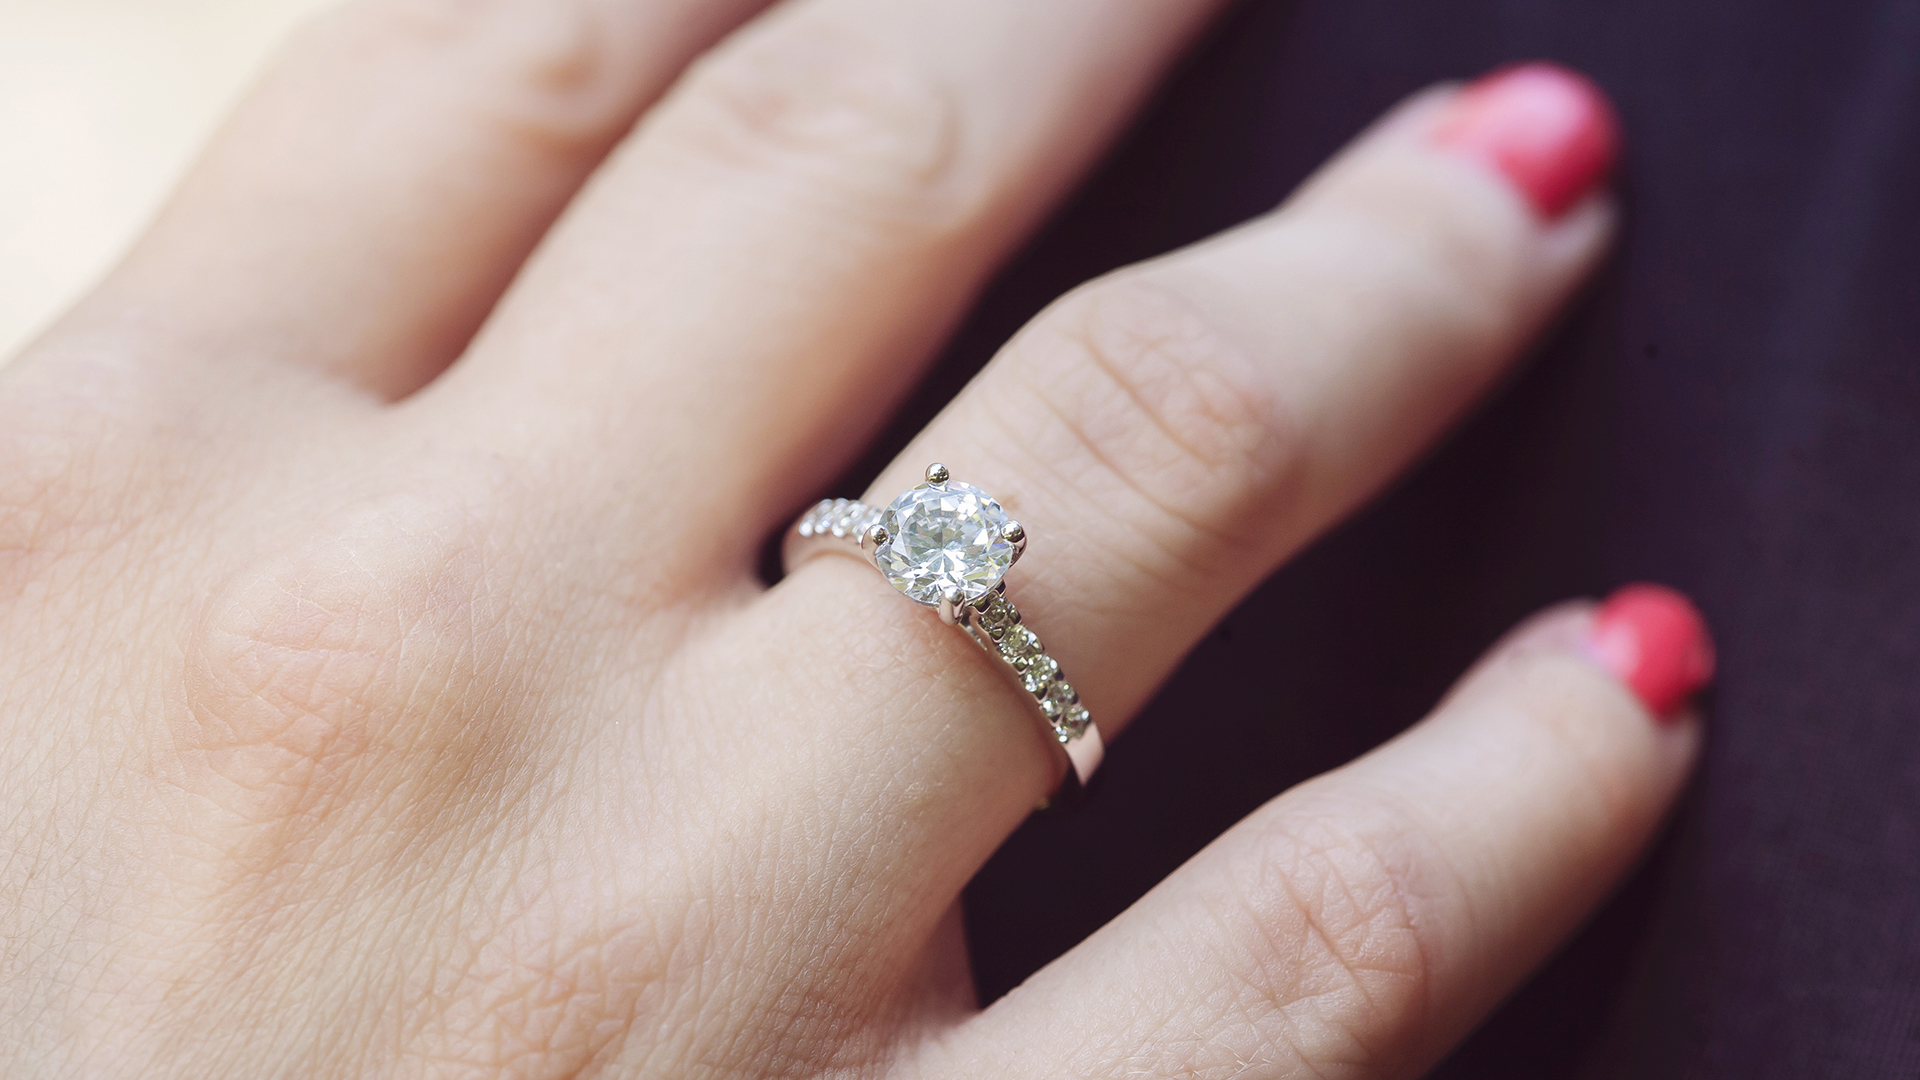 Man tries to crowdfund $15K engagement ring faces backlash TODAY